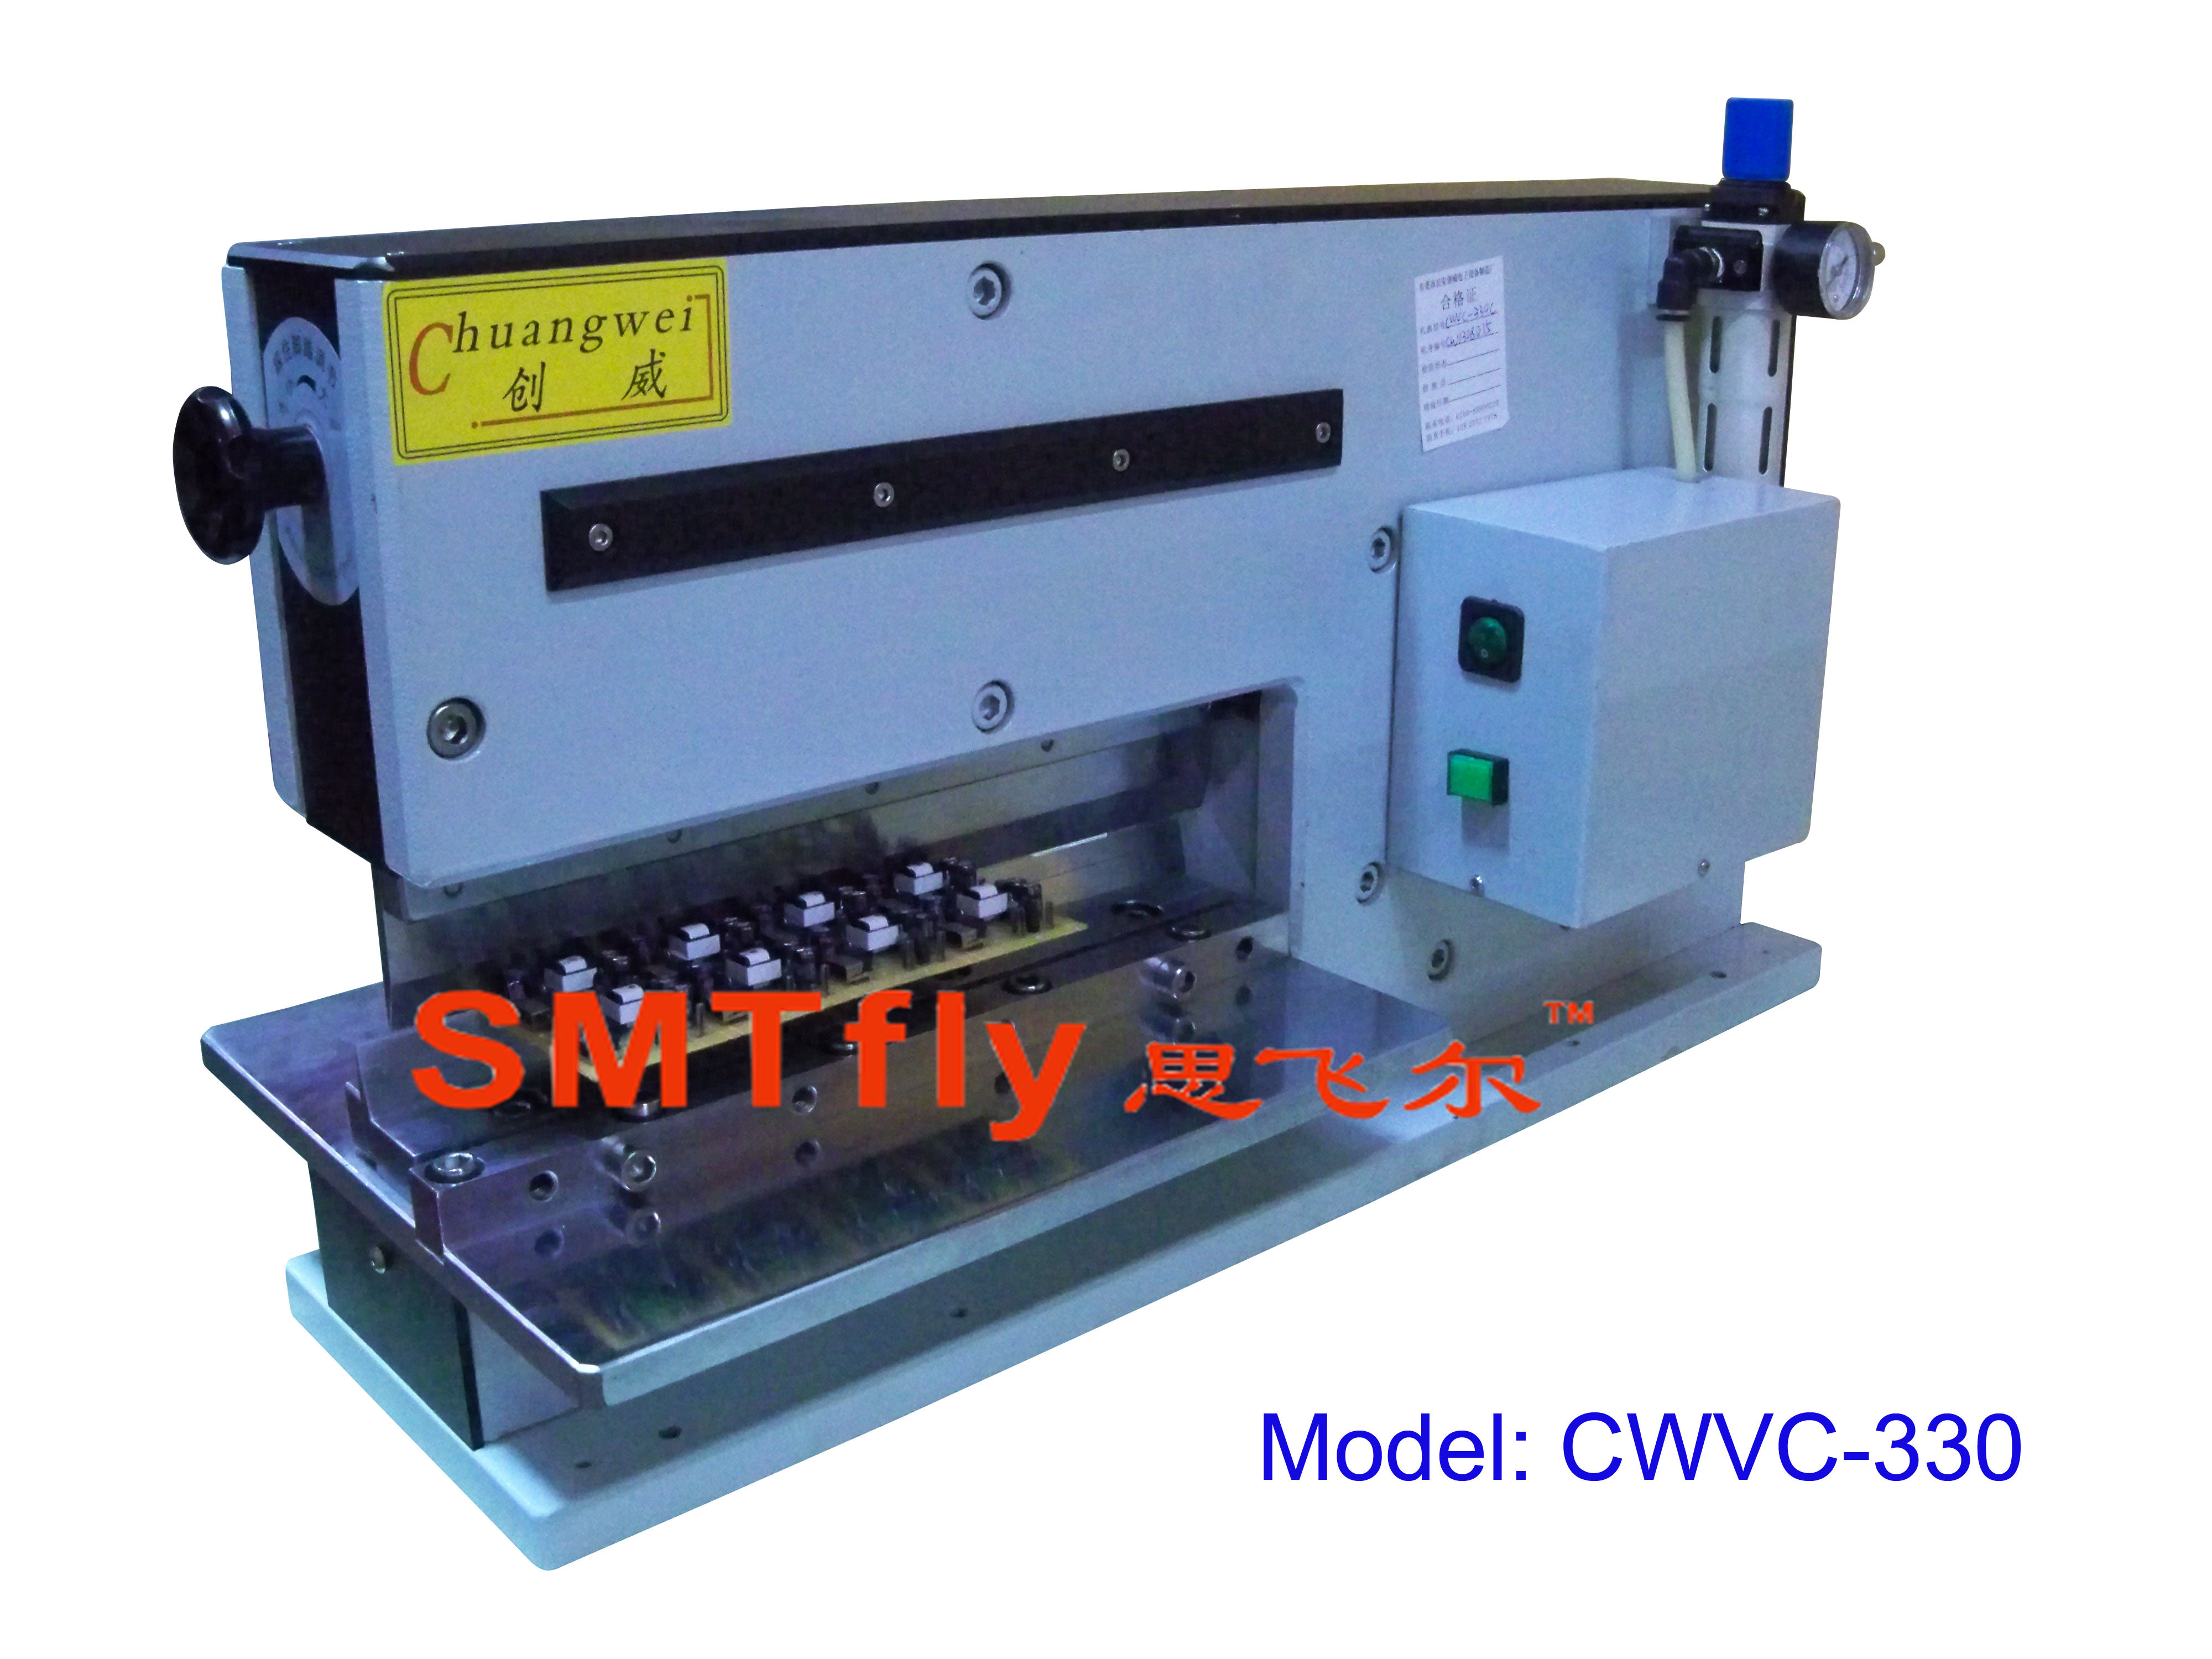 V Cut PCB Depaneling Equipment,SMTfly-330J